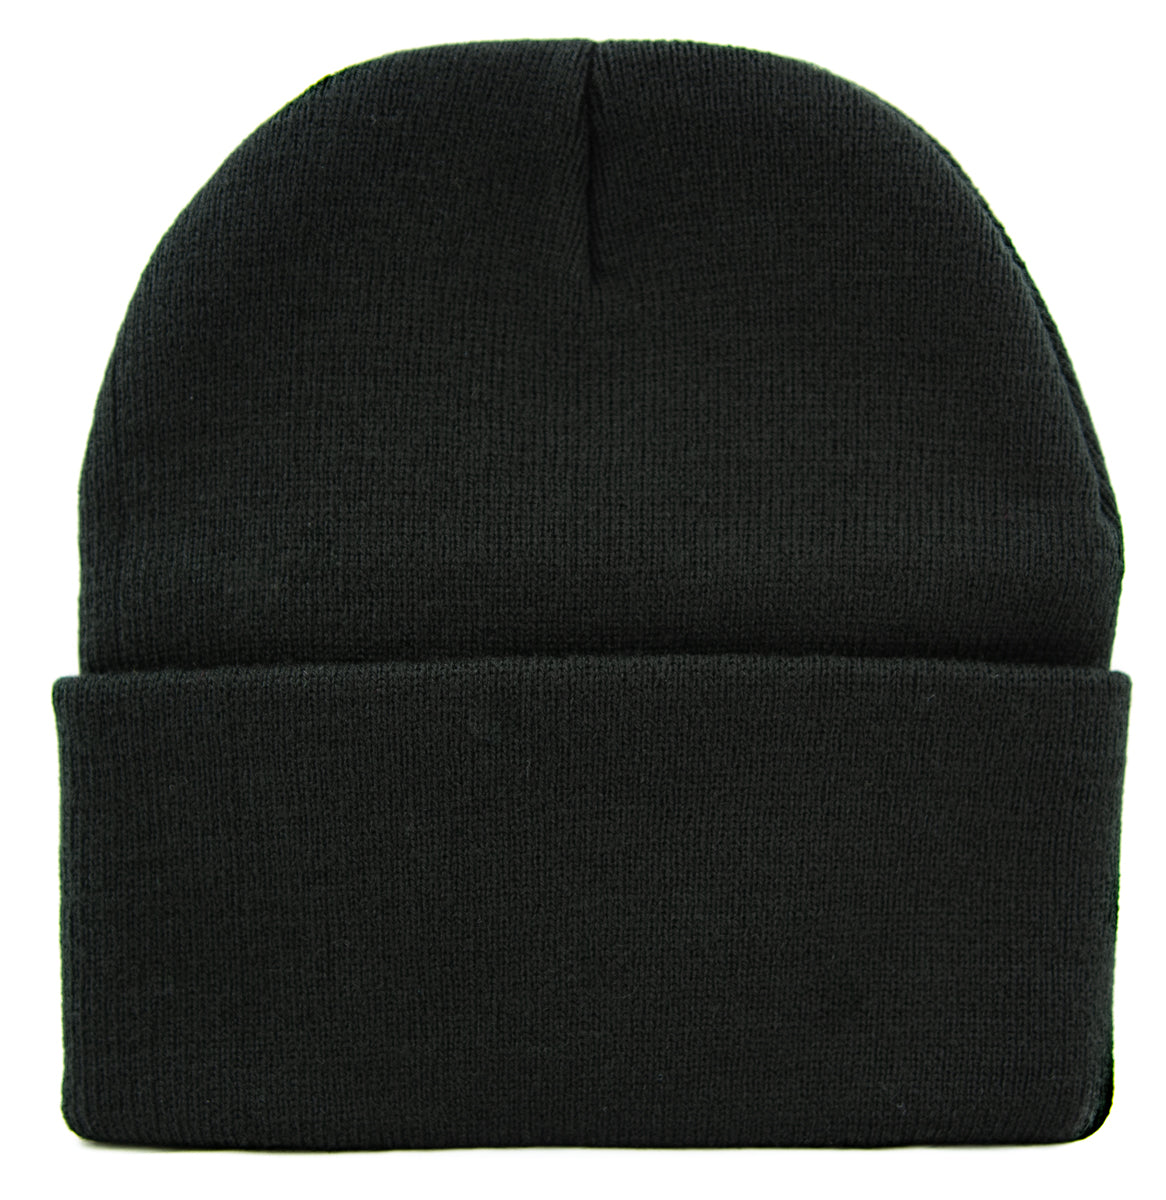 Medieval Holy Gothic Cross Cuff Beanie Knit Cap Occult Alternative Clothing